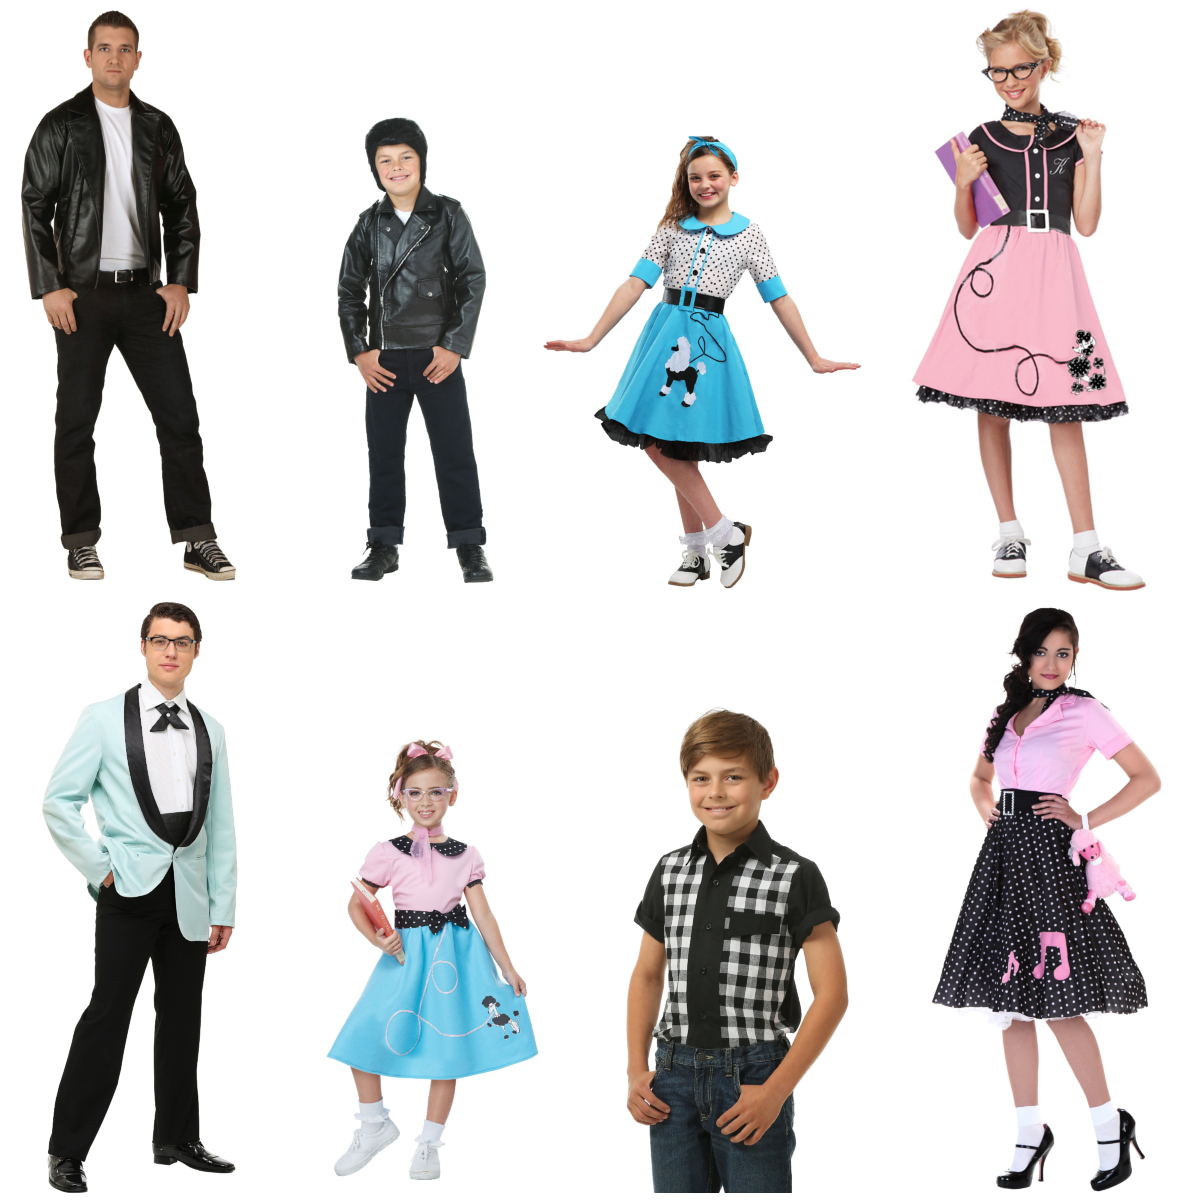 Sock Hop Costumes to Jitterbug In